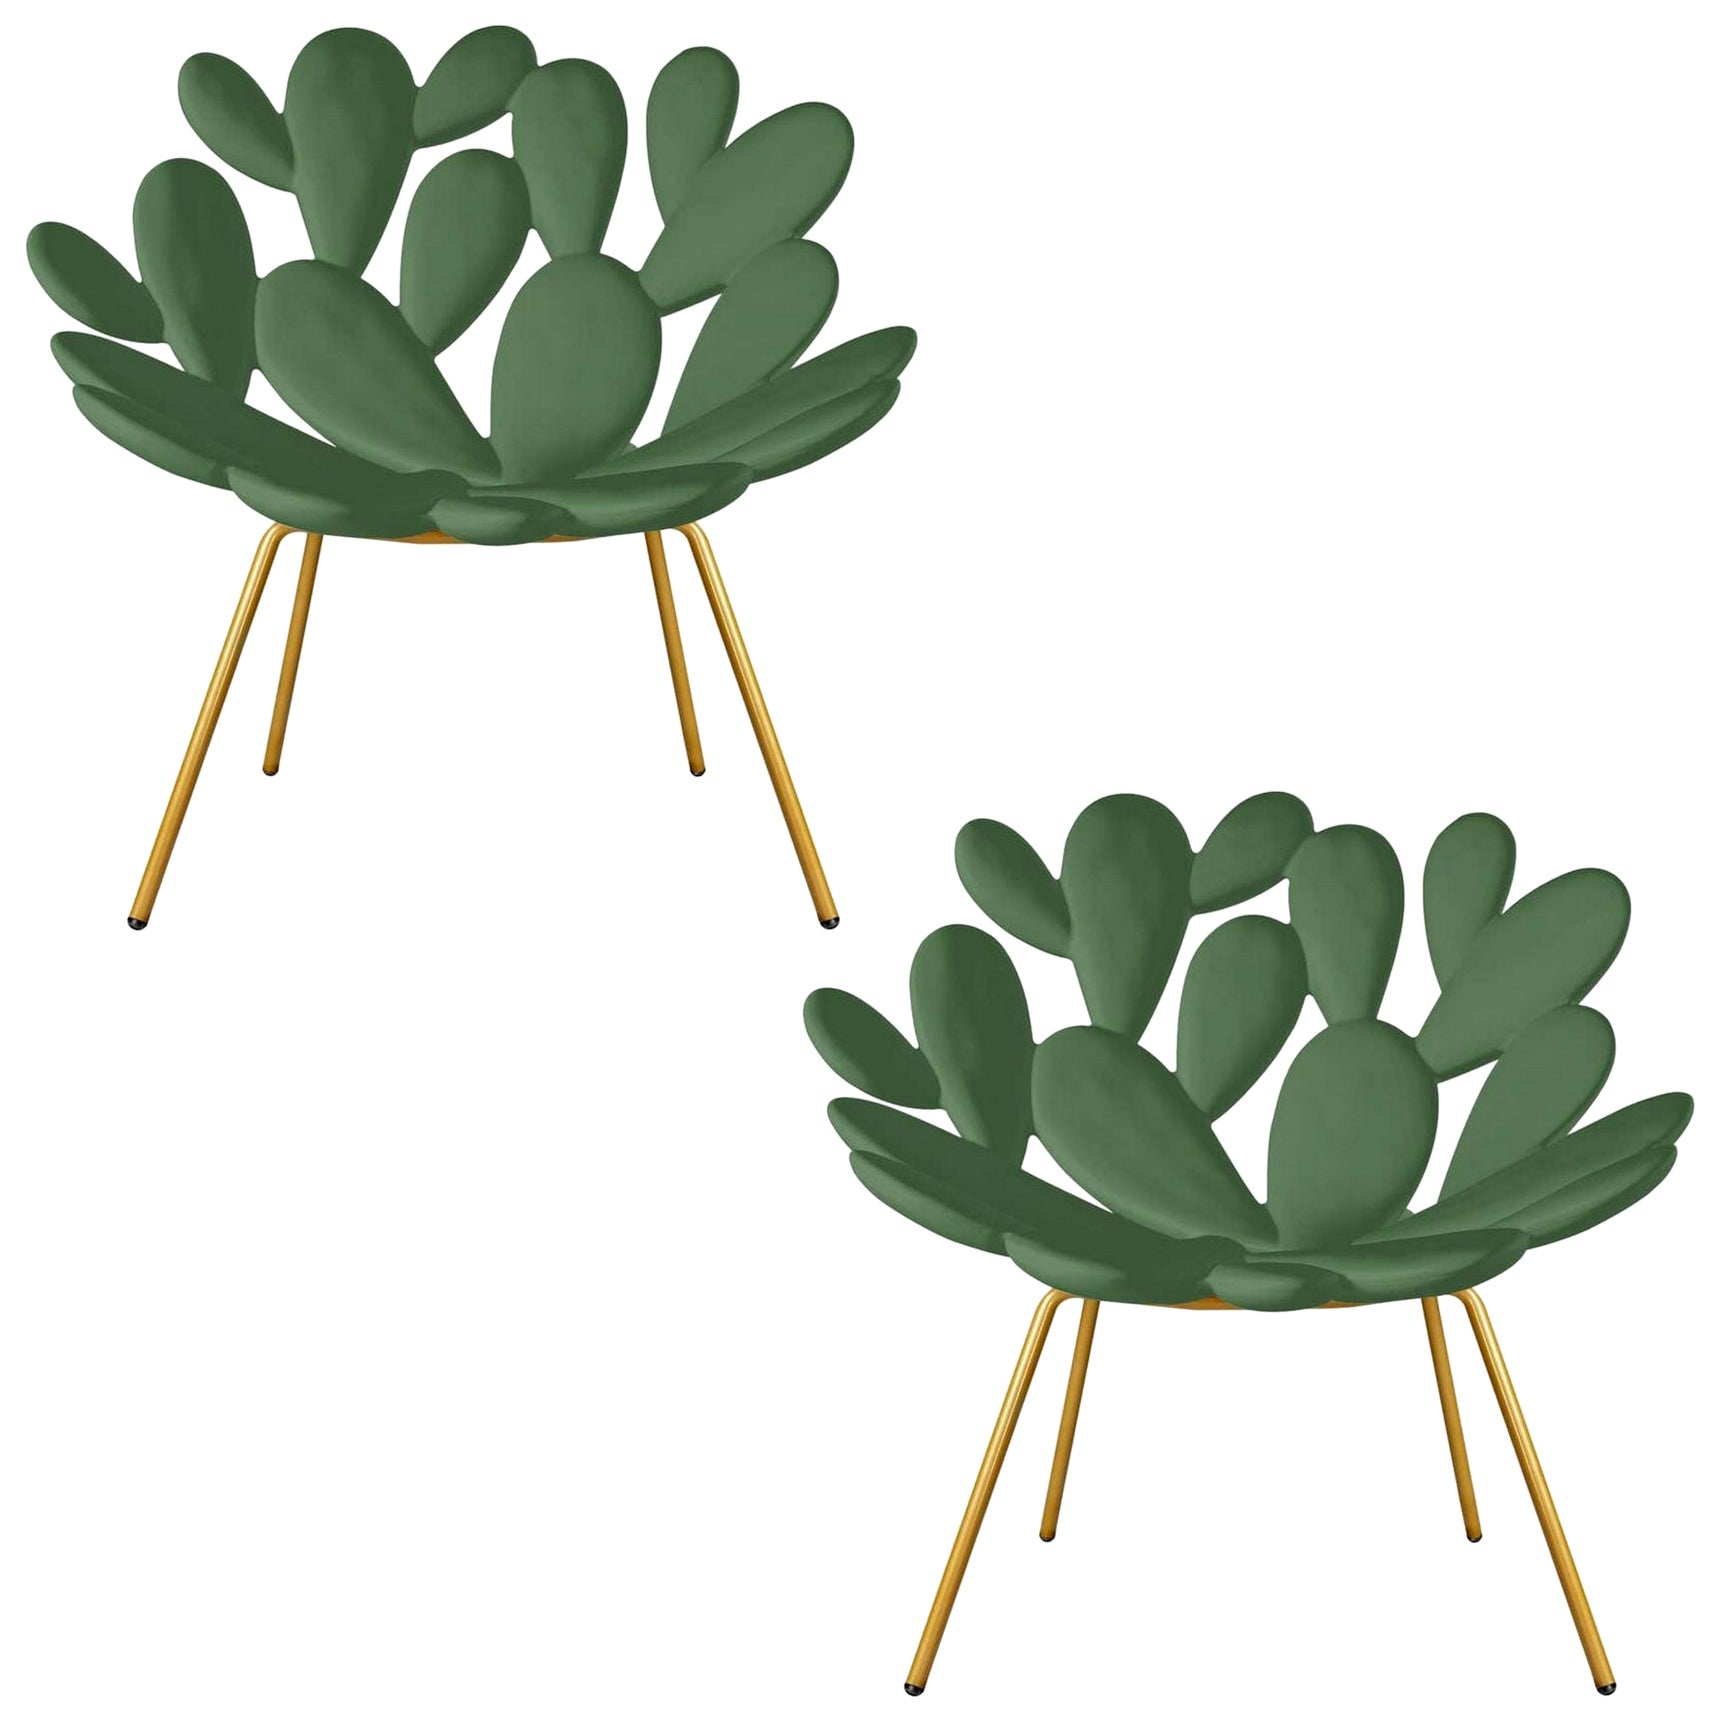 Set of 2 Green & Brass Outdoor Cactus Chairs, Designed by Marcantonio